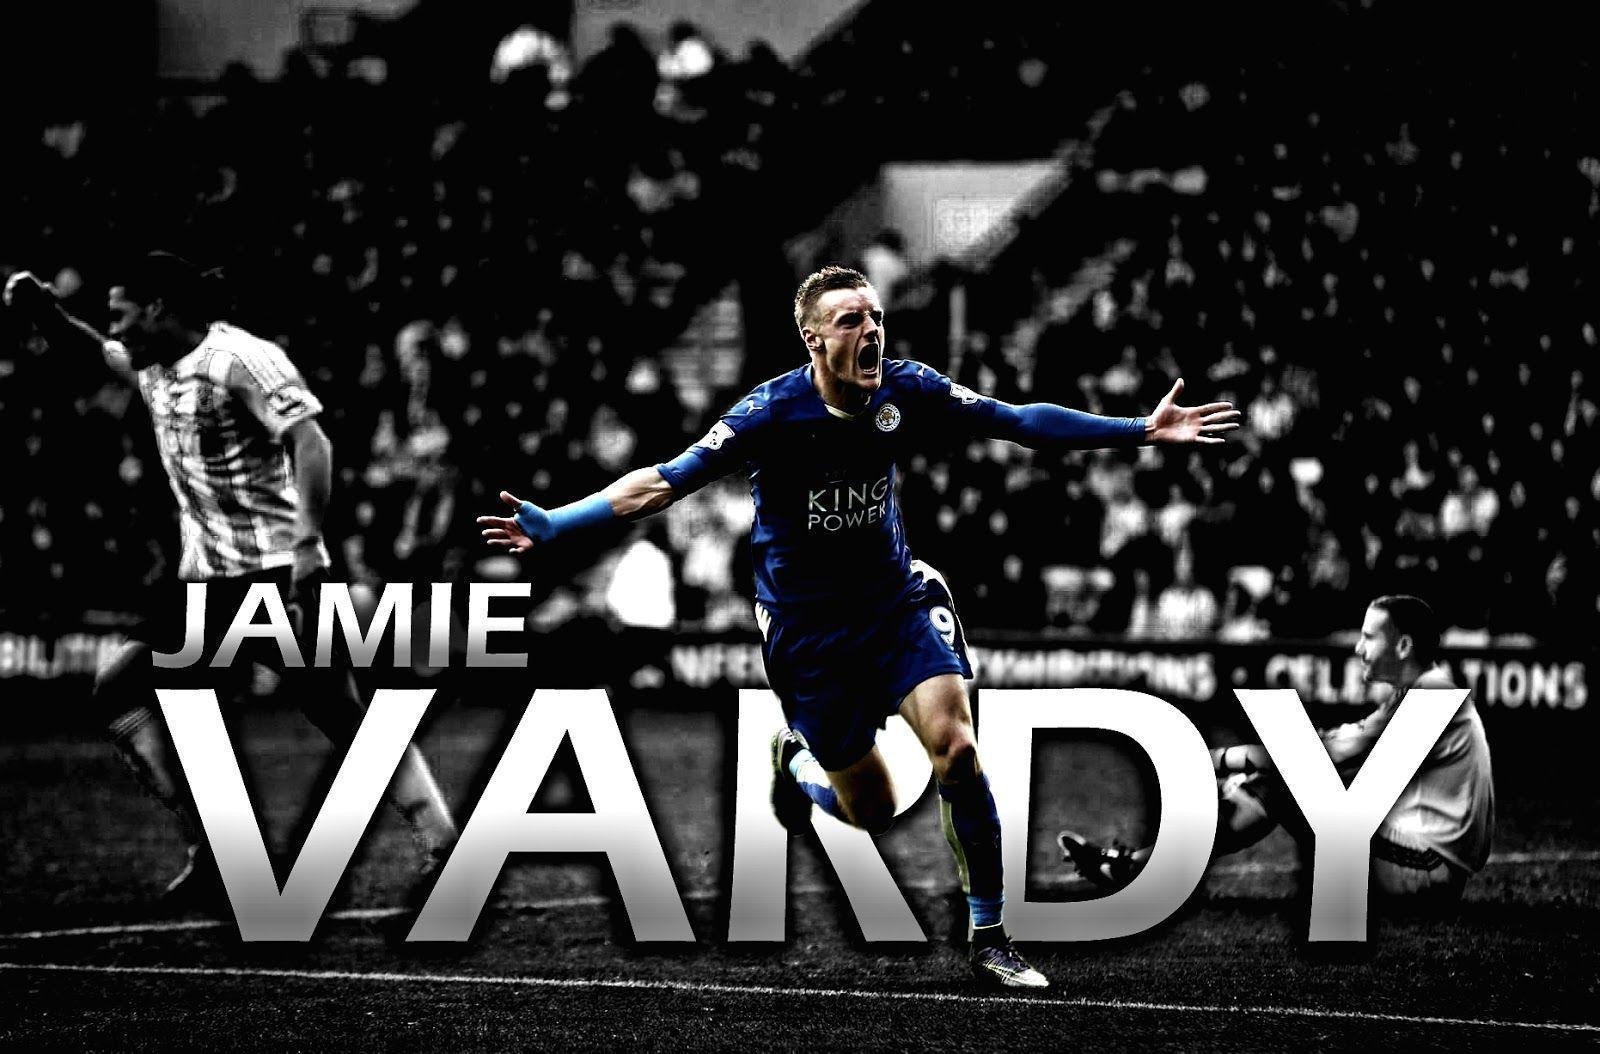 Jamie Vardy, The New Hero For Leicester City | Awesome Football ...